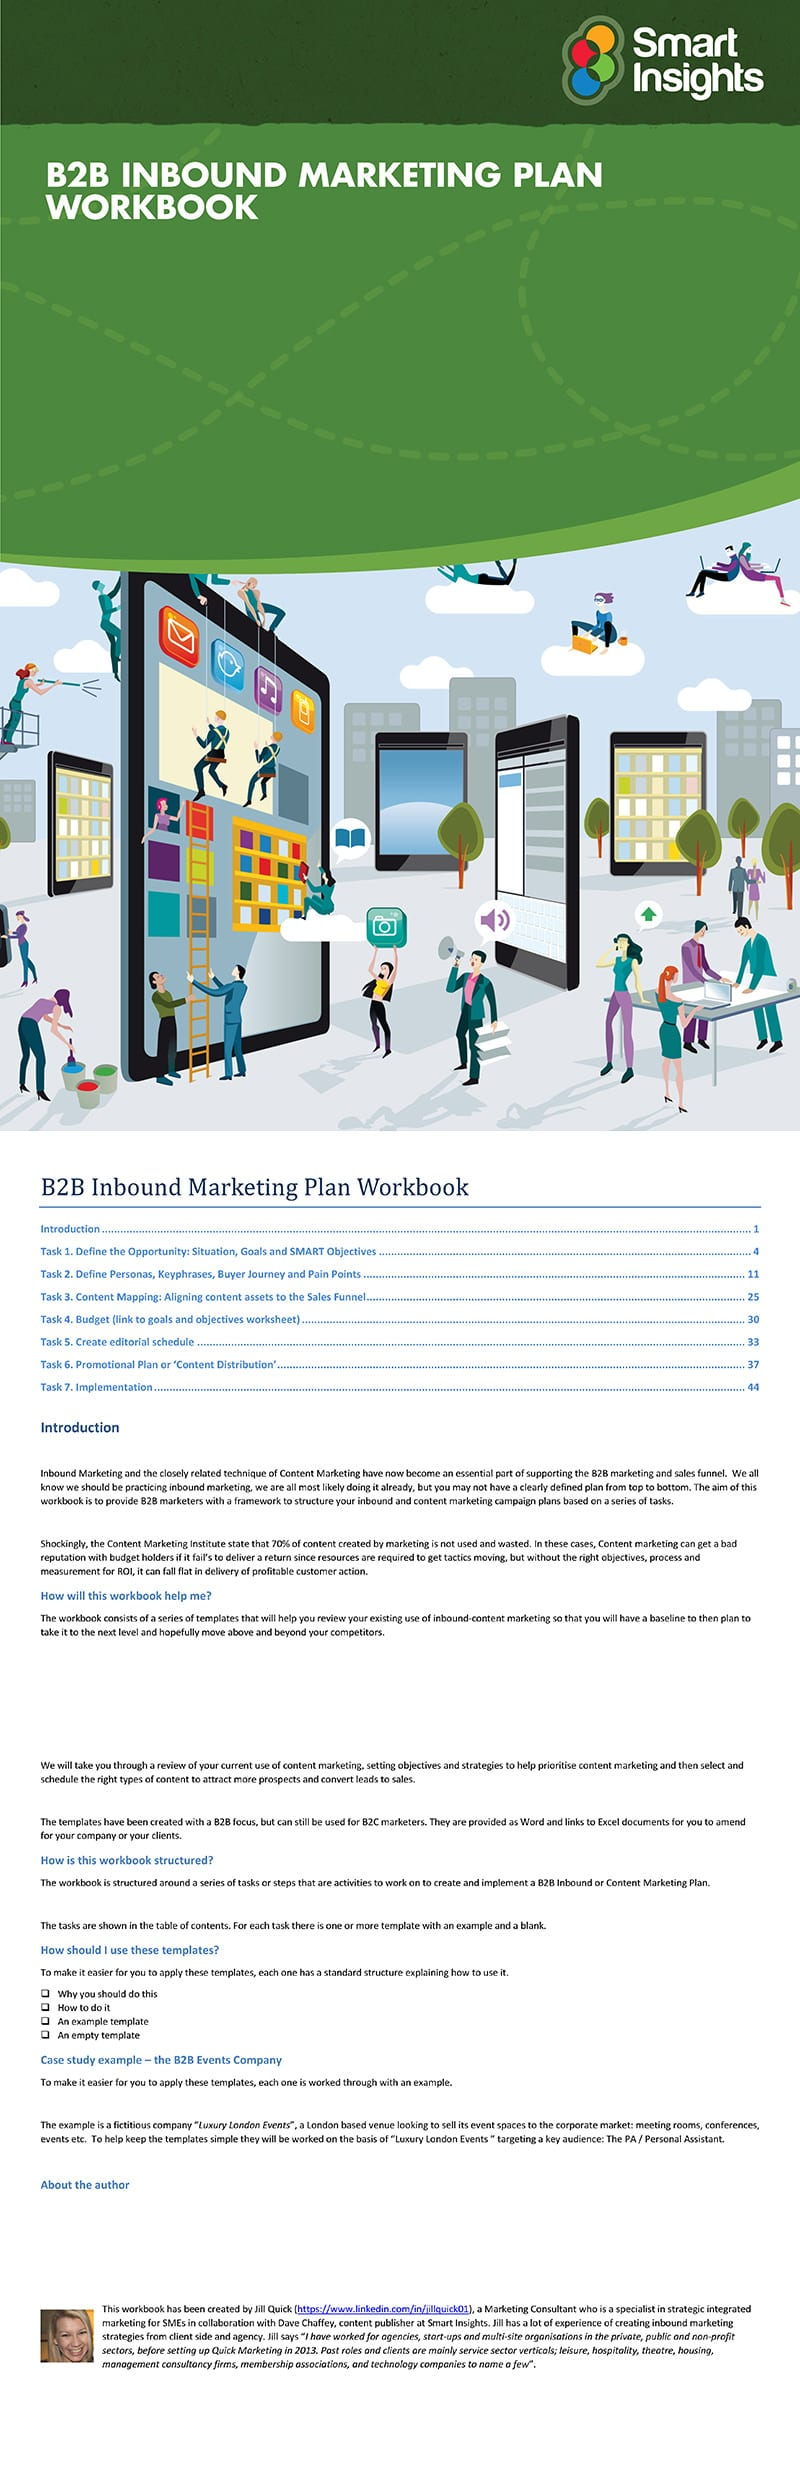 B2B Inbound Marketing workbook